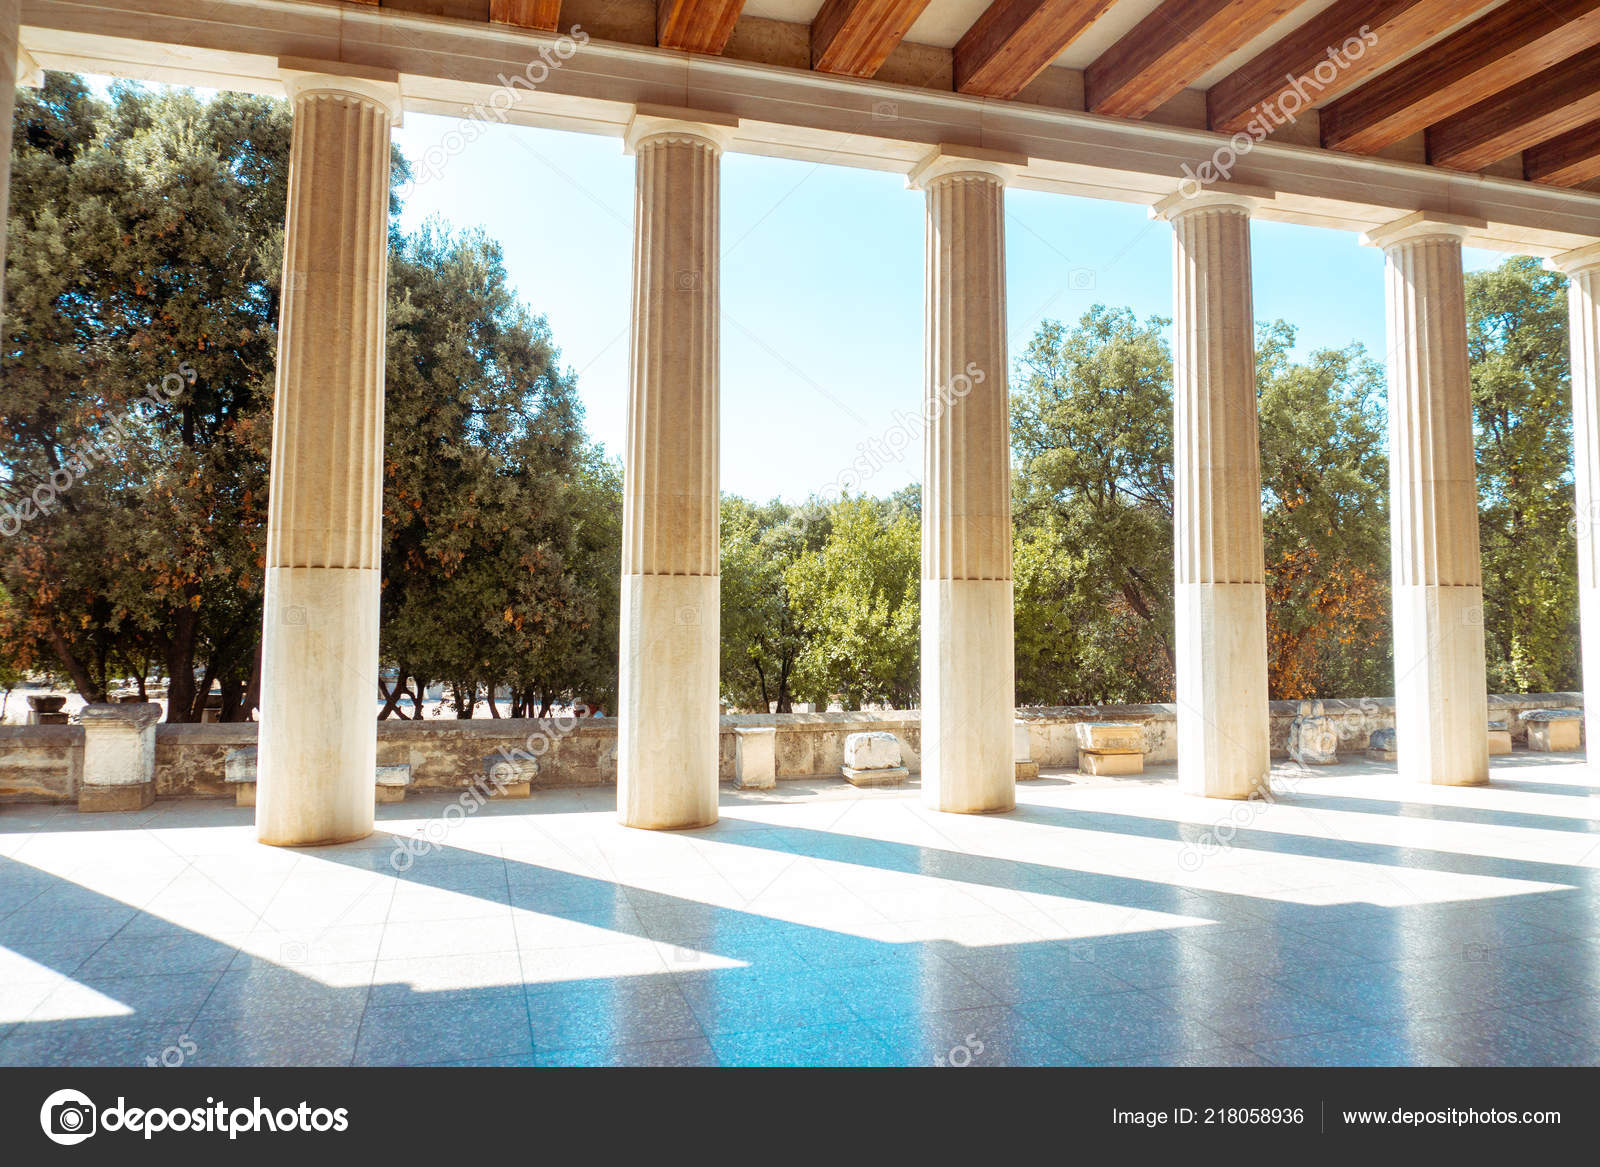 Ancient Greek Columns Gardens Stock Photo Ponomarencko 218058936